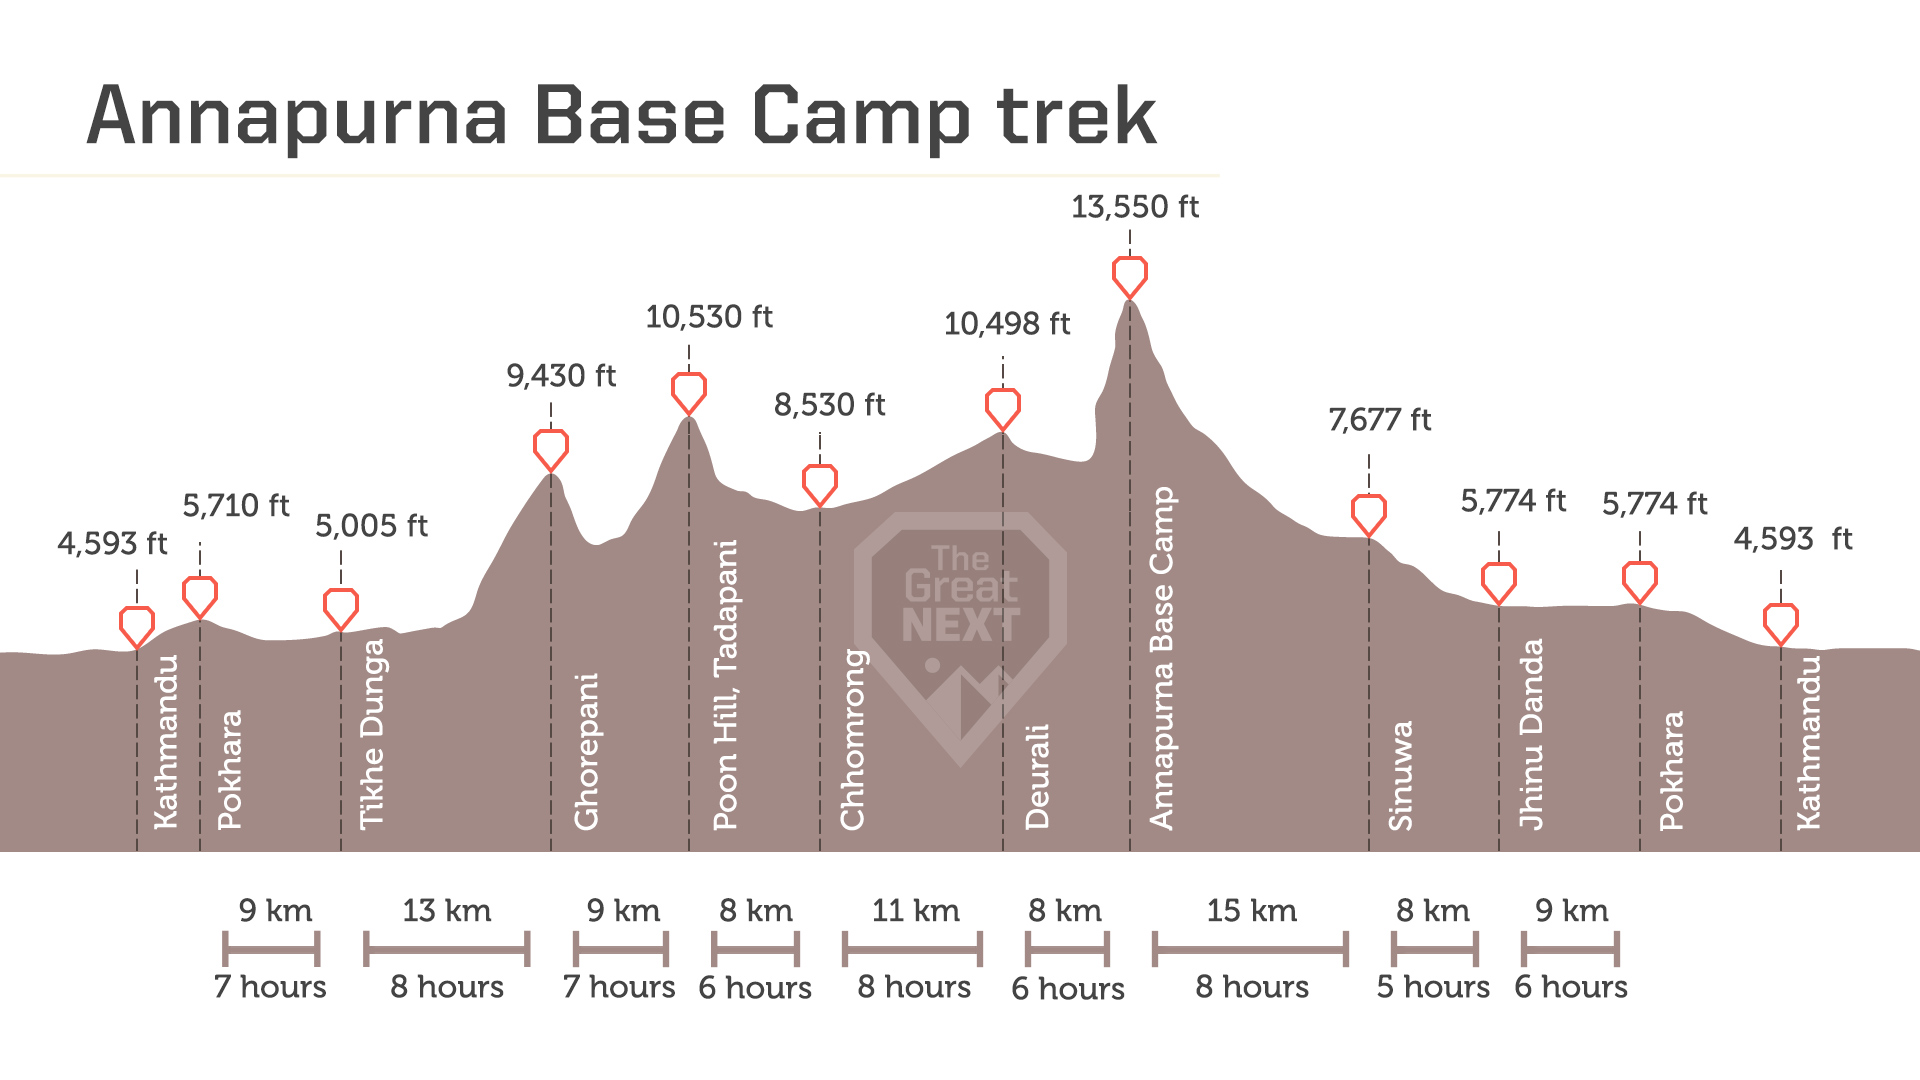 See the altitude map for the Annapurna Base Camp trek